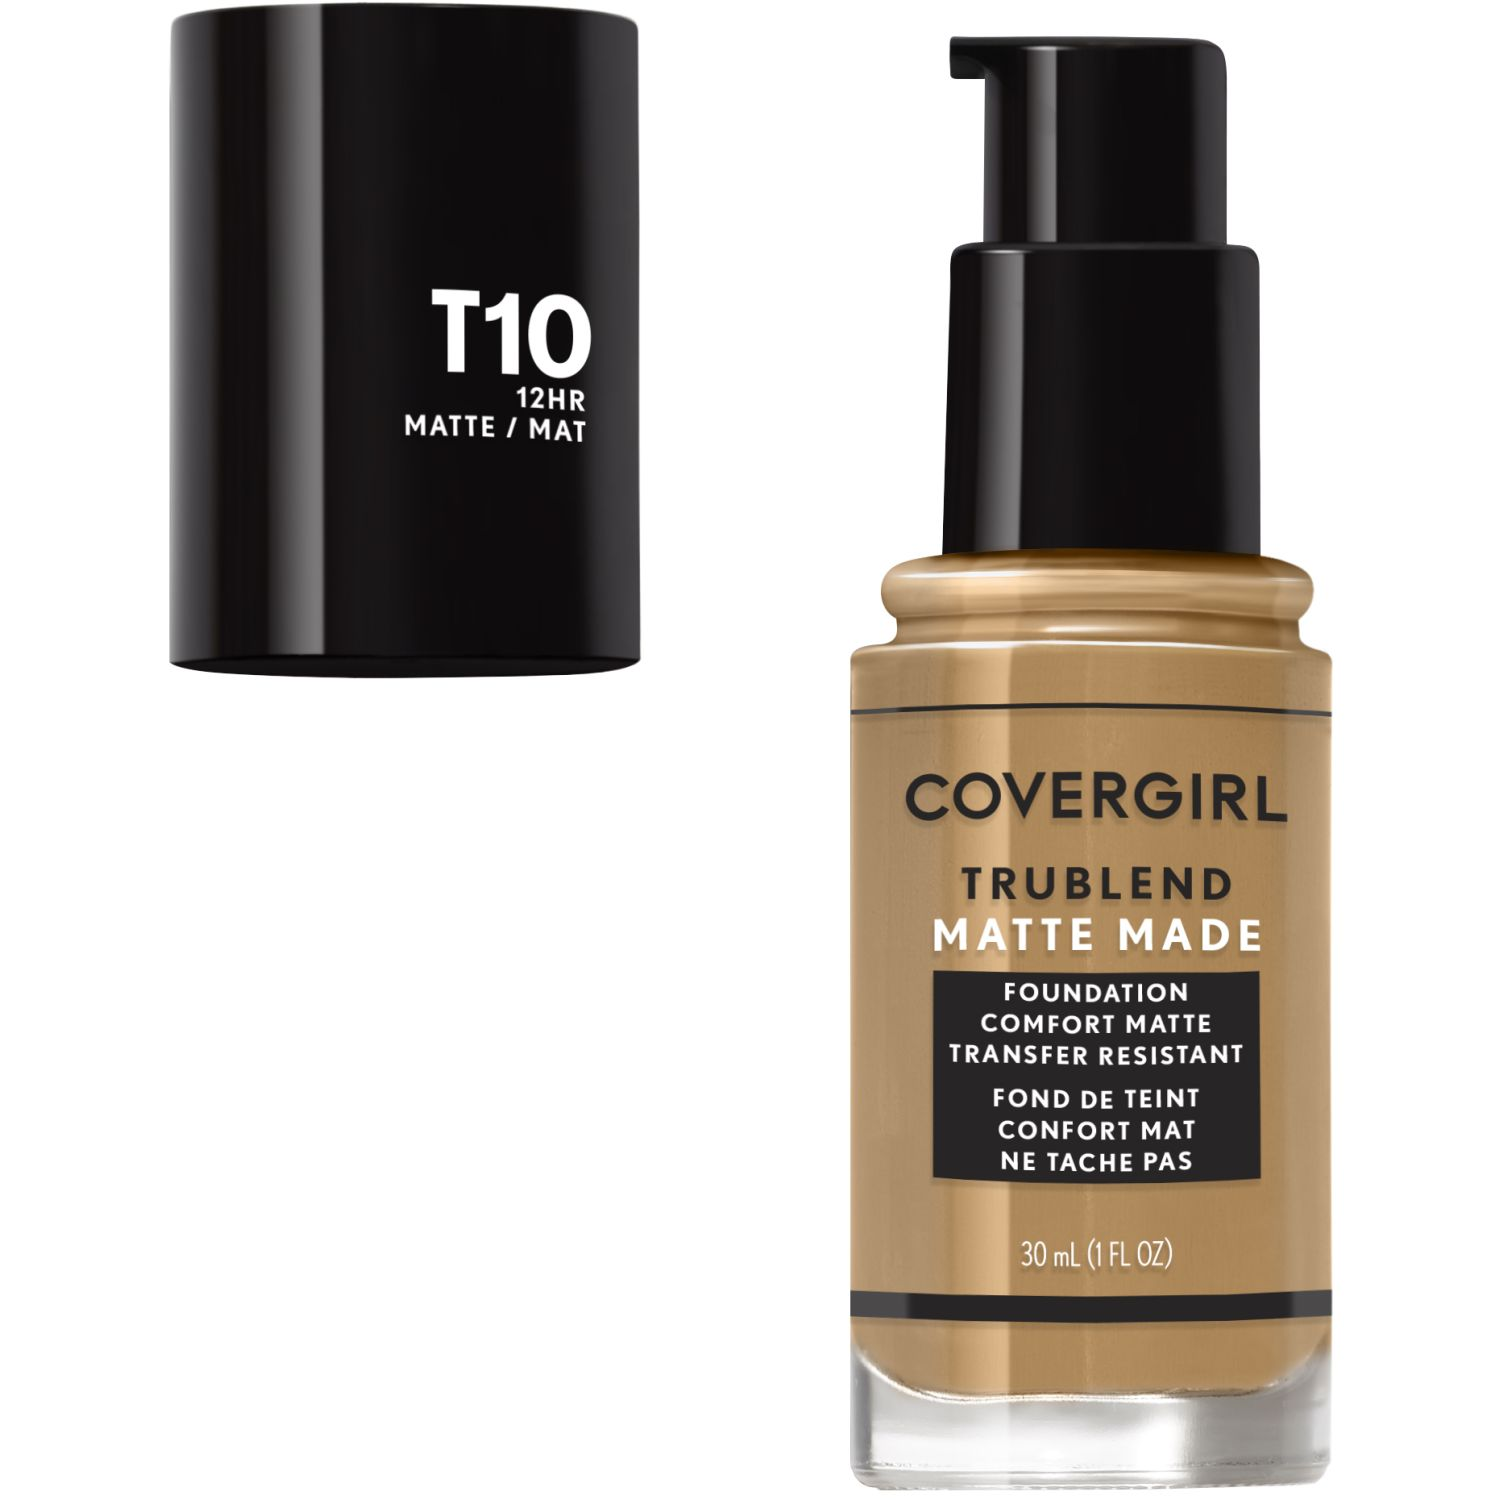 Covergirl Base Trublend Matte Made Liquid Makeup GOLDEN AMBER T10 Bases